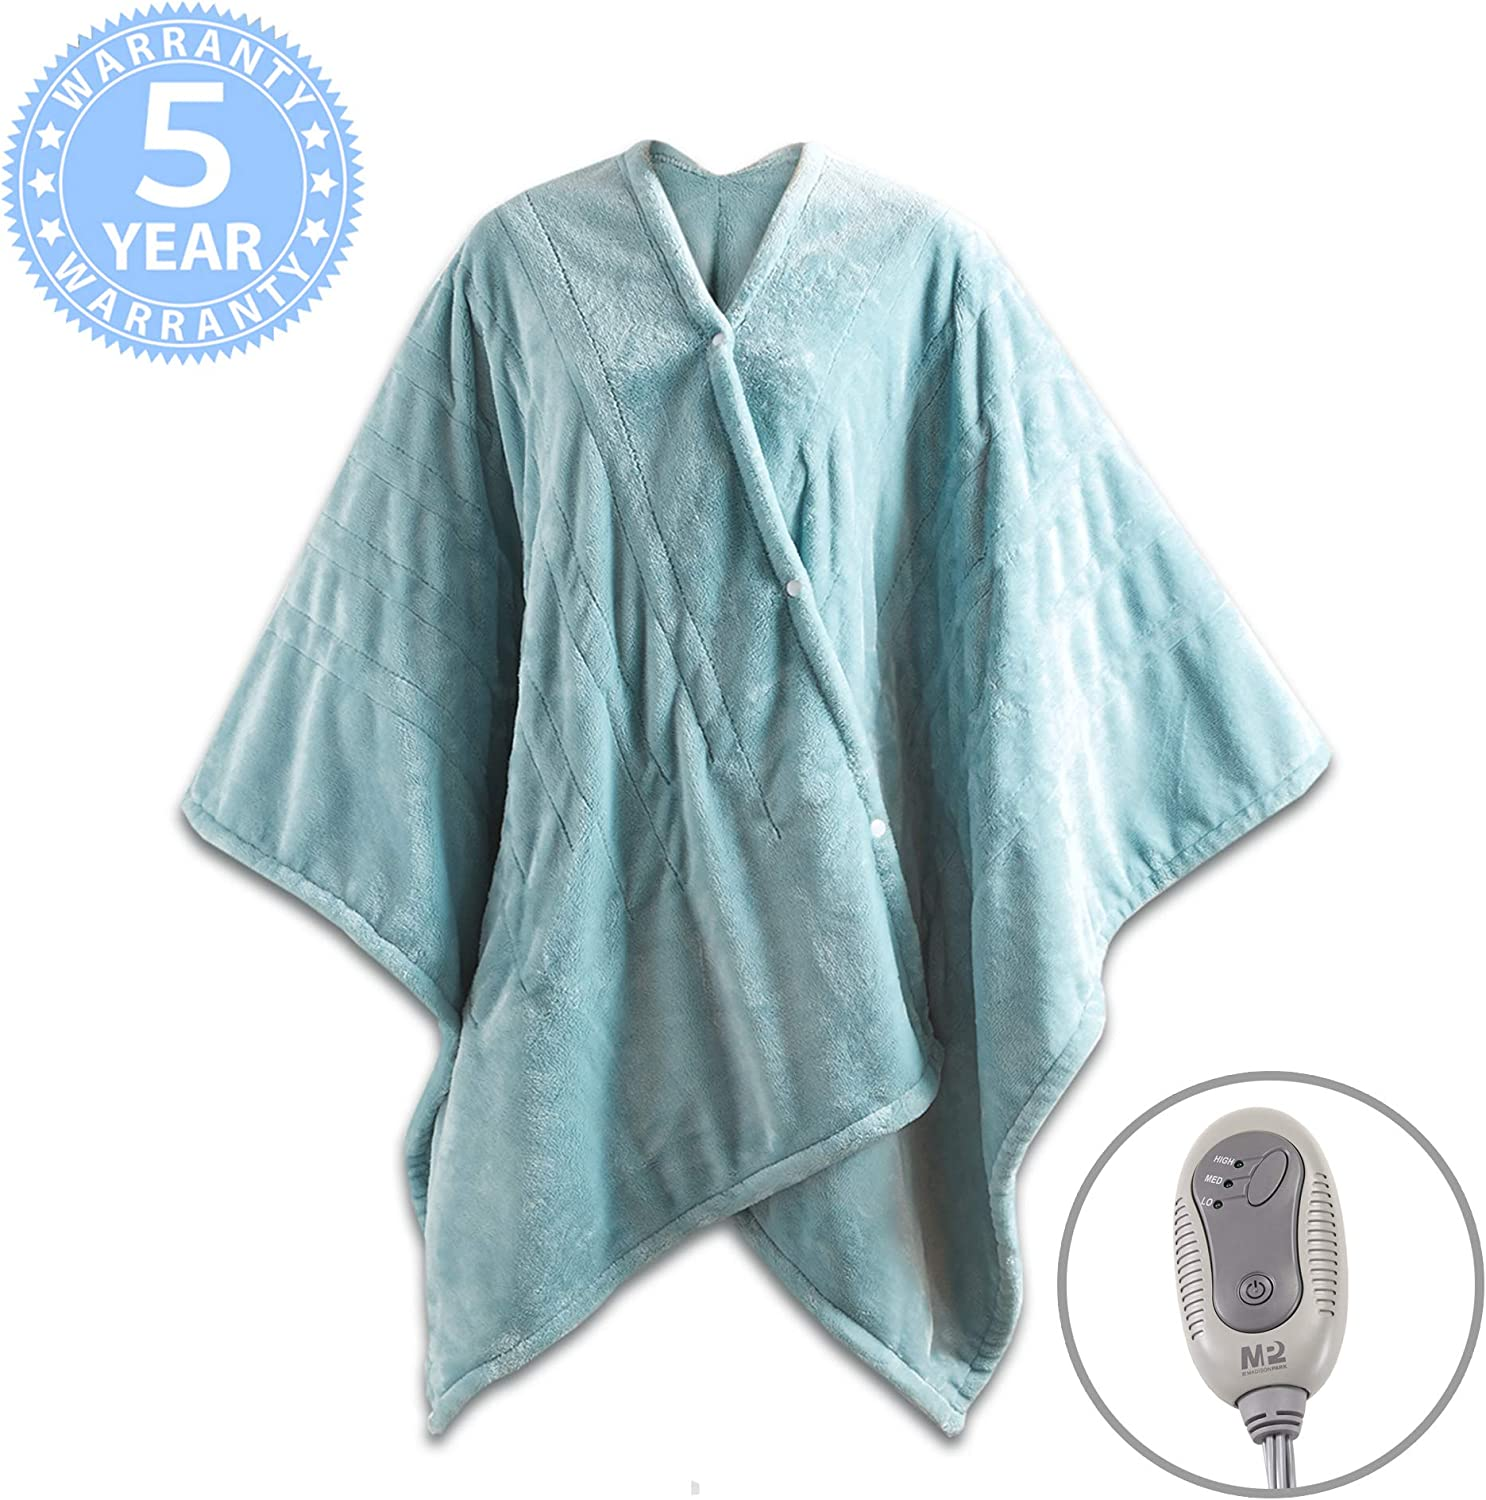 """MP2 Fleece Heated Blanket Wrap Shawl, Wearable Electric Poncho Throw with Buttons, 3 Heating Settings & 2 Hours Auto Shut Off, 50""""x 64"""" Sefoam"""